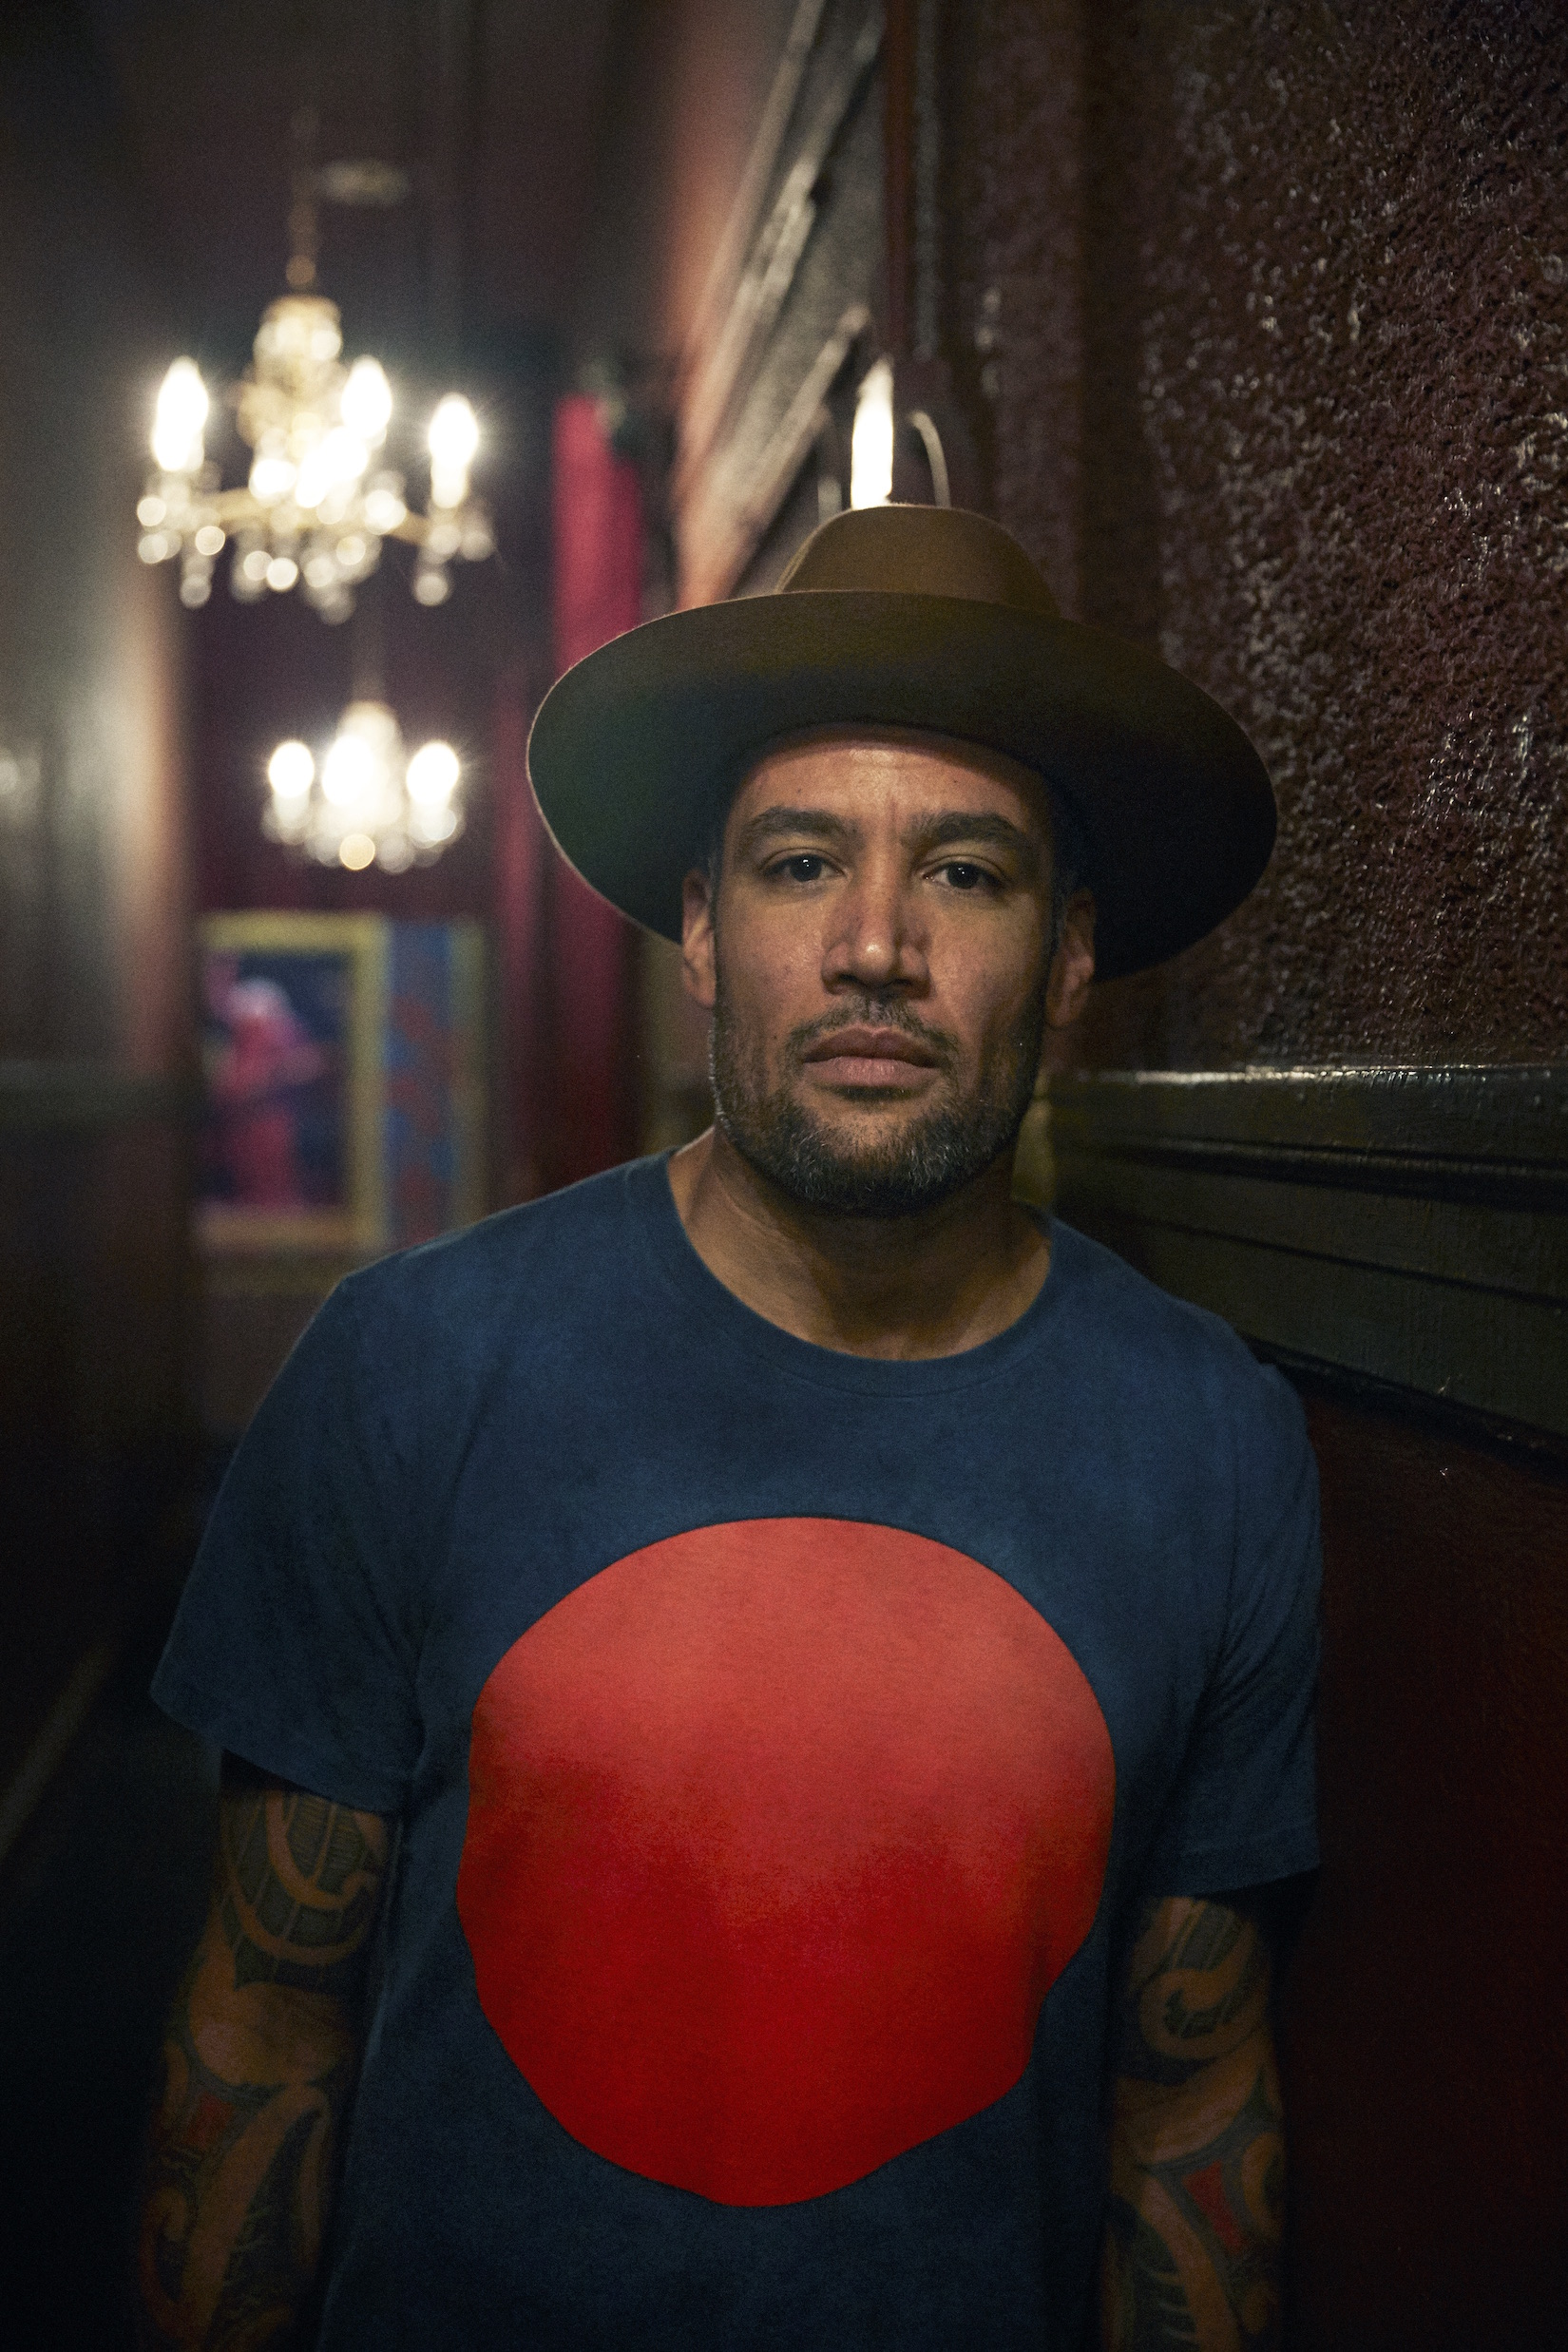 ben harper fade into you